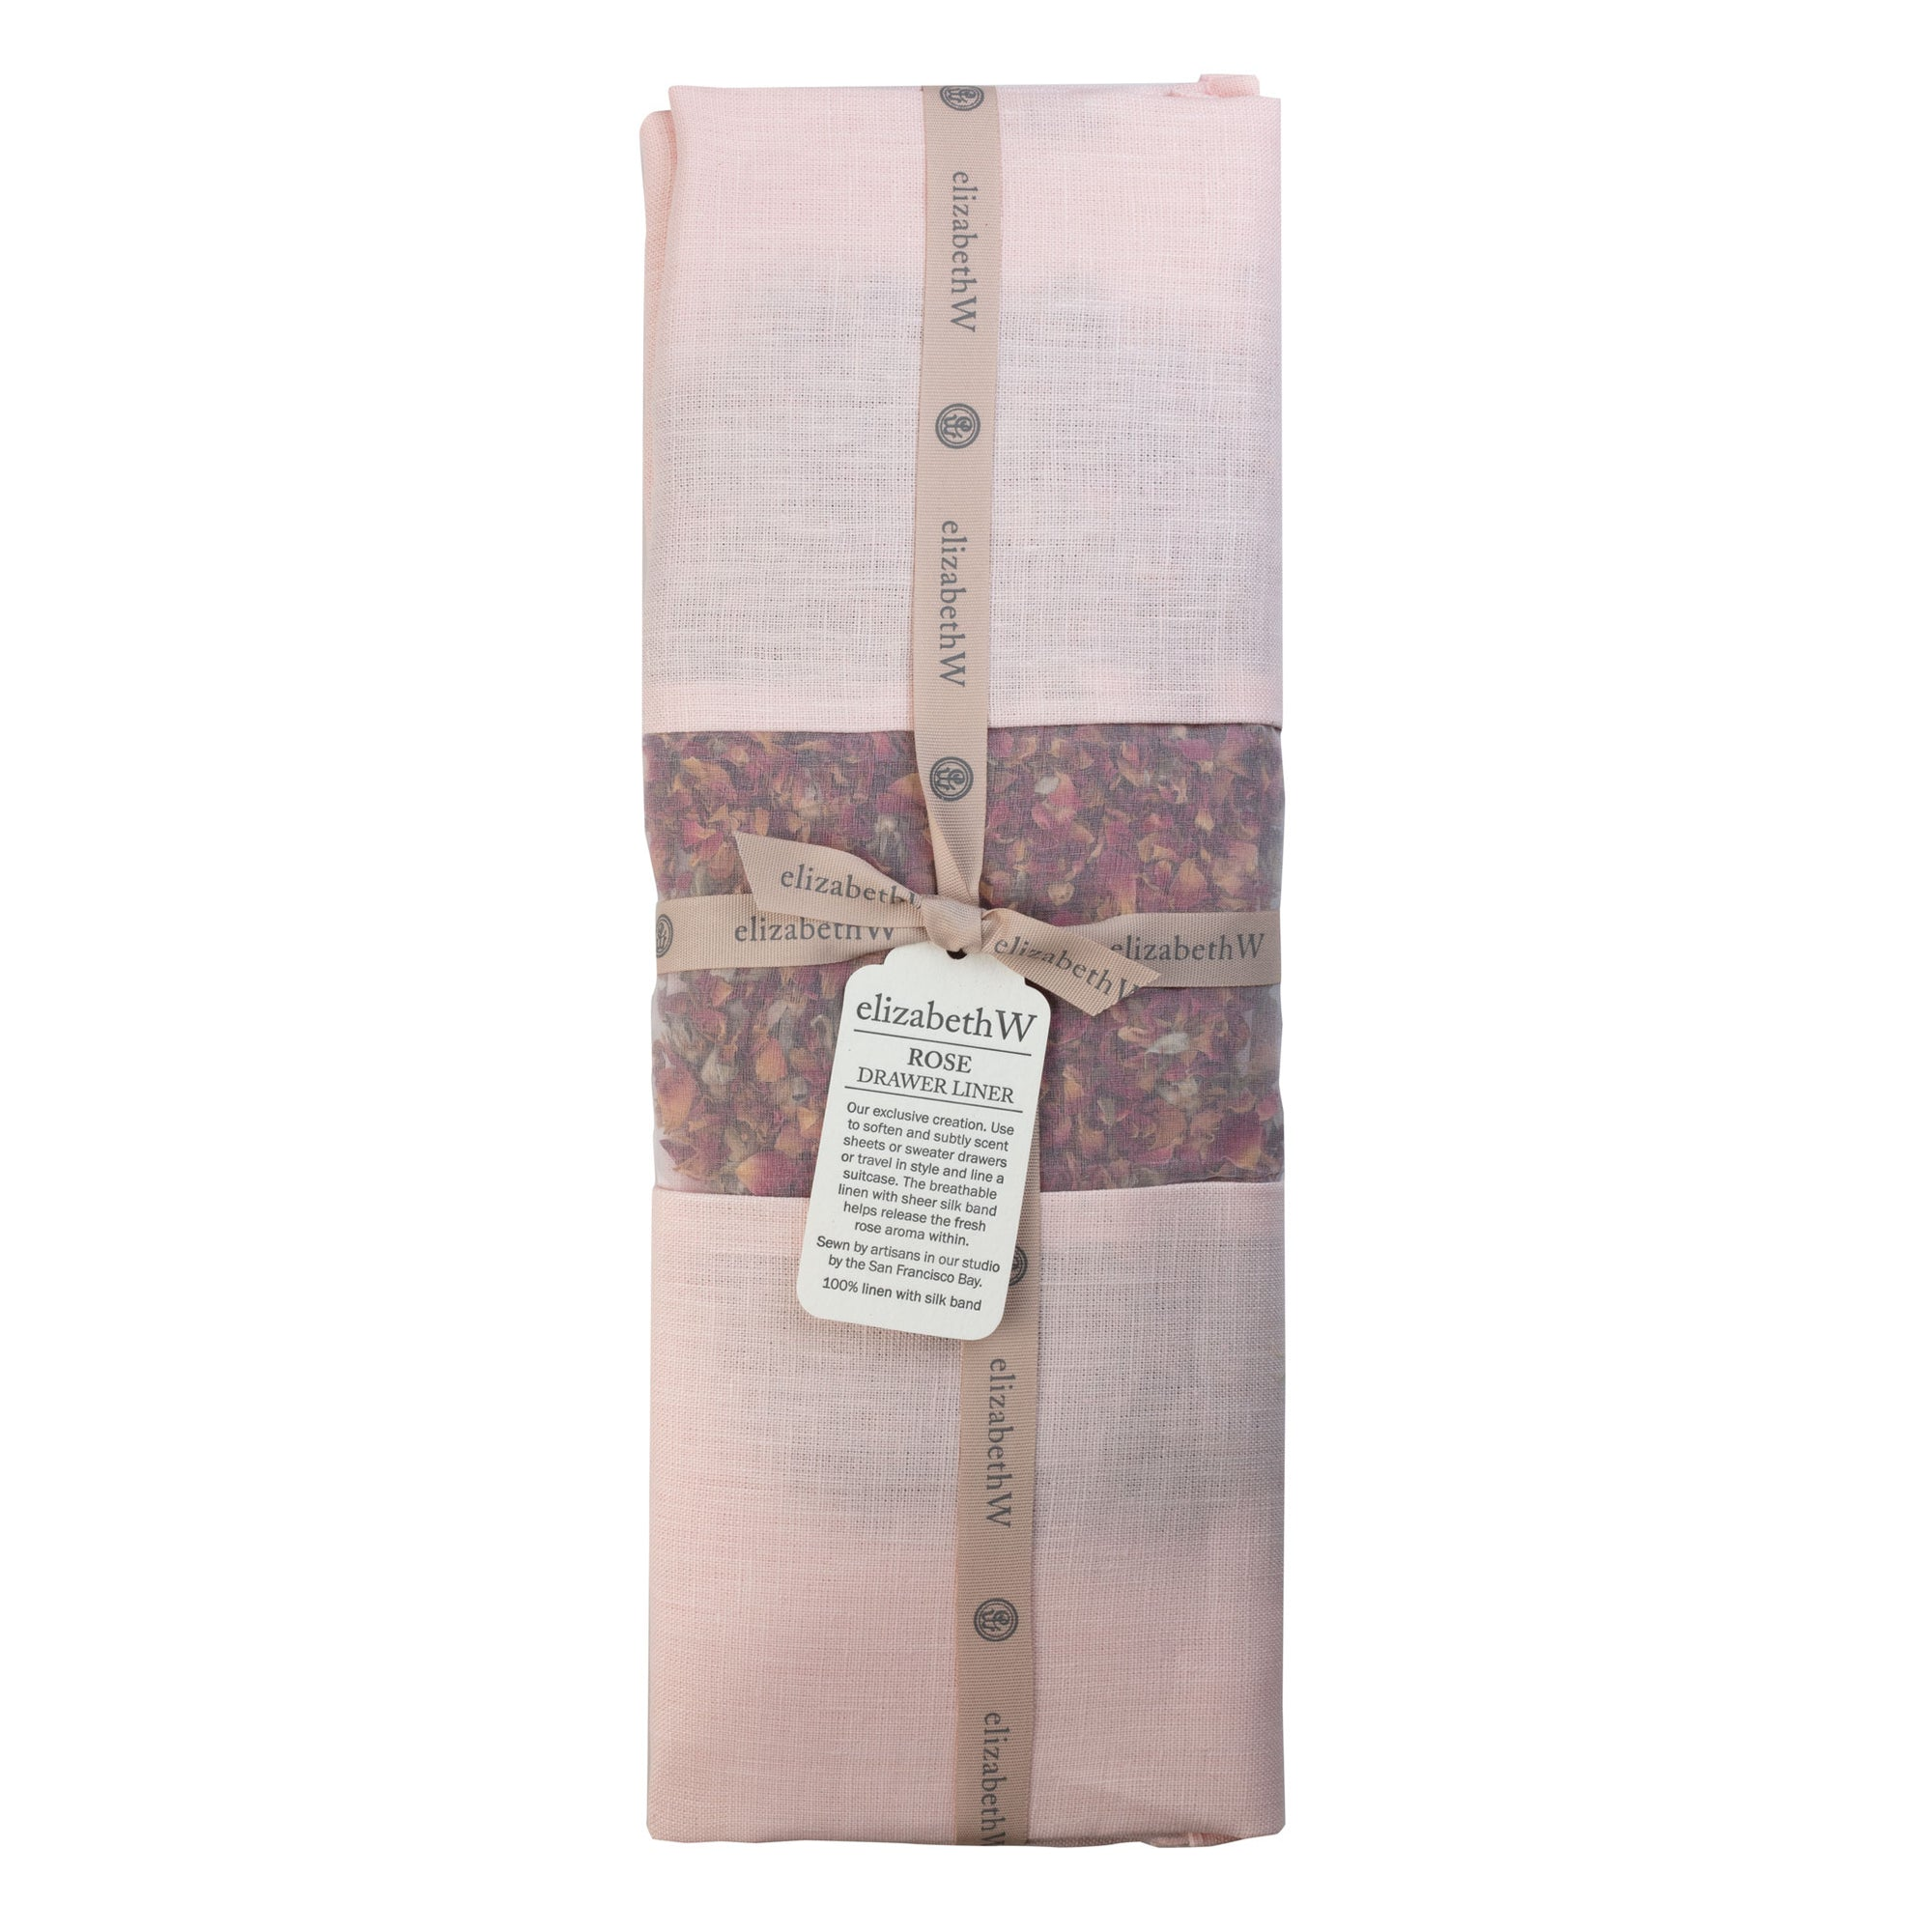 Rose Drawer Liner in a pink colored Linen